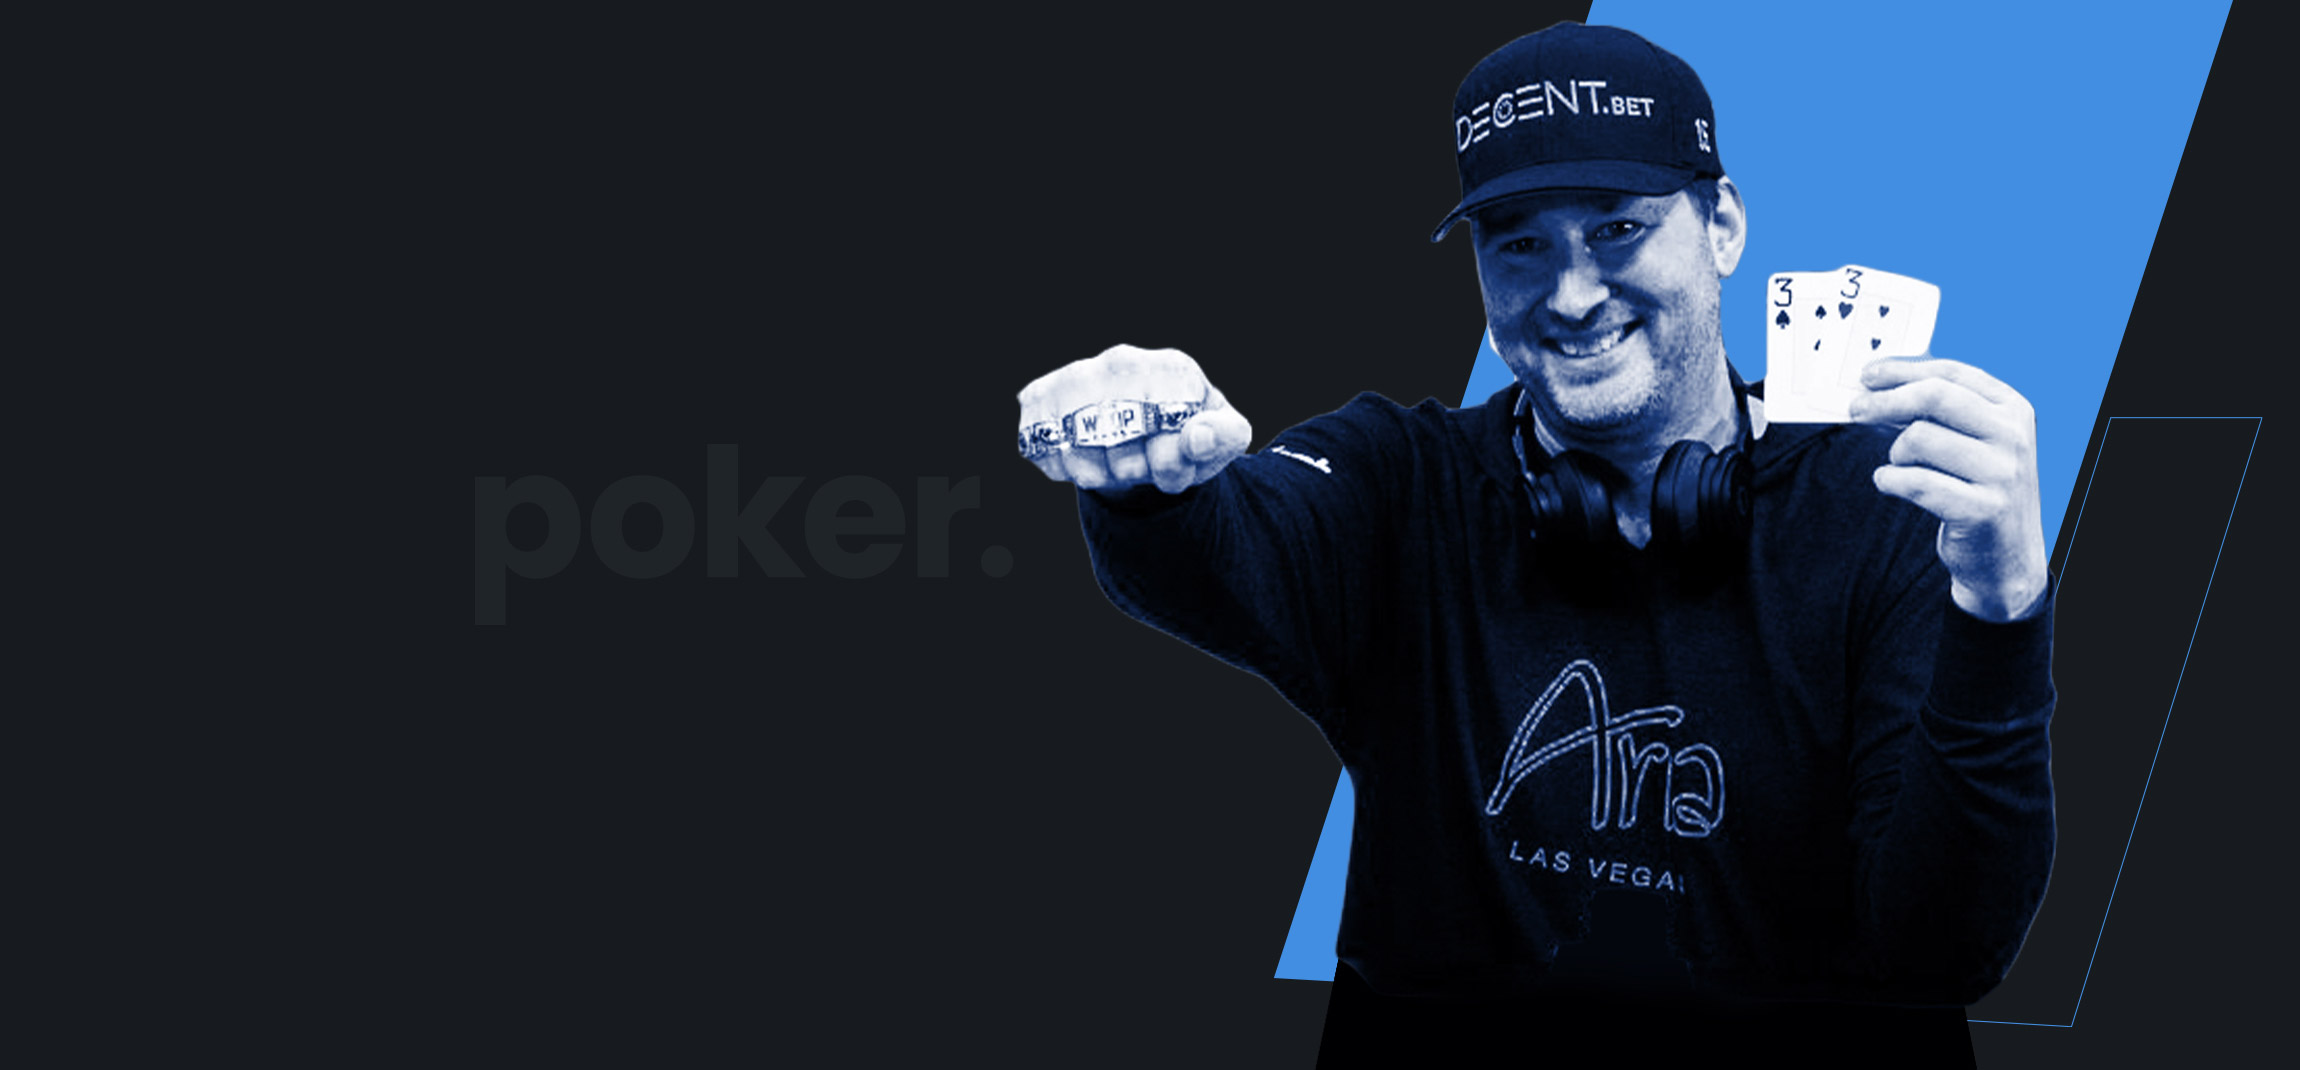 We are Matchroom Sport - We are Poker